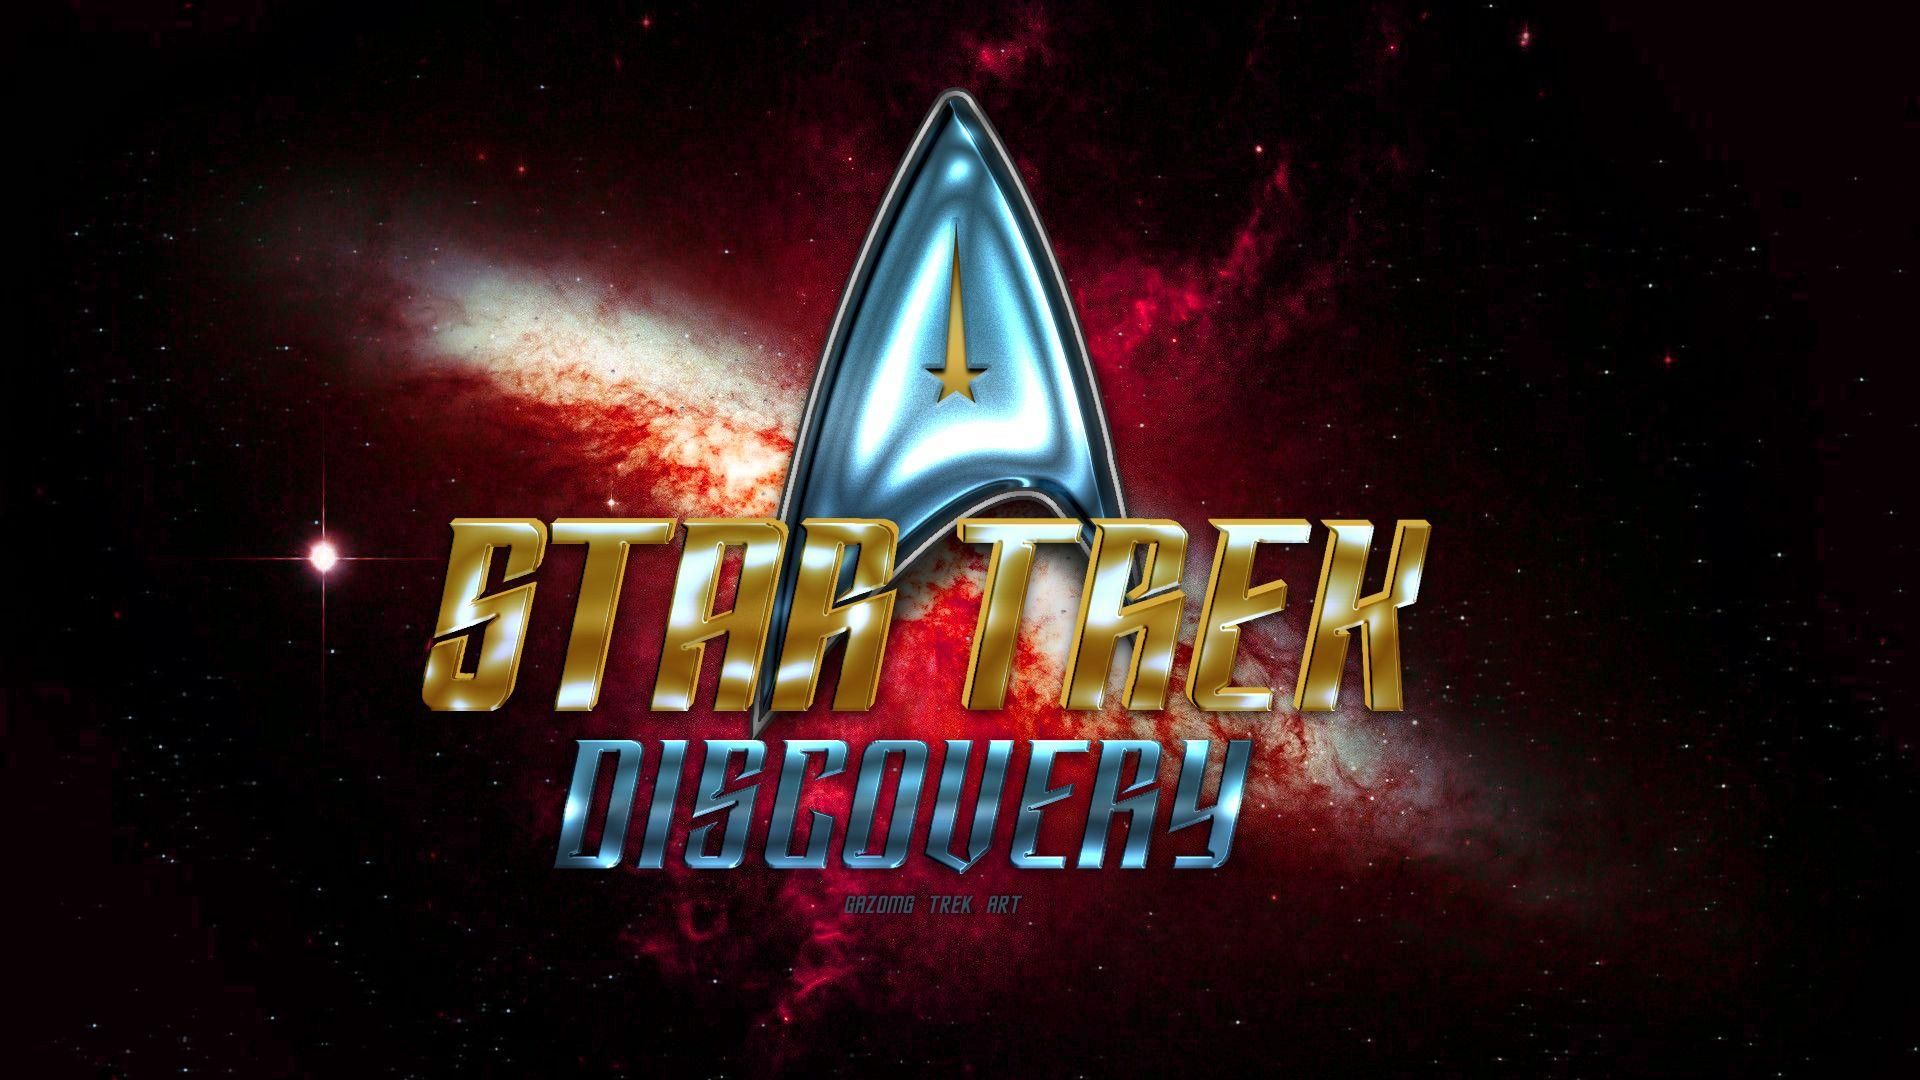 Star Trek Discovery Wallpapers Wallpaper Cave